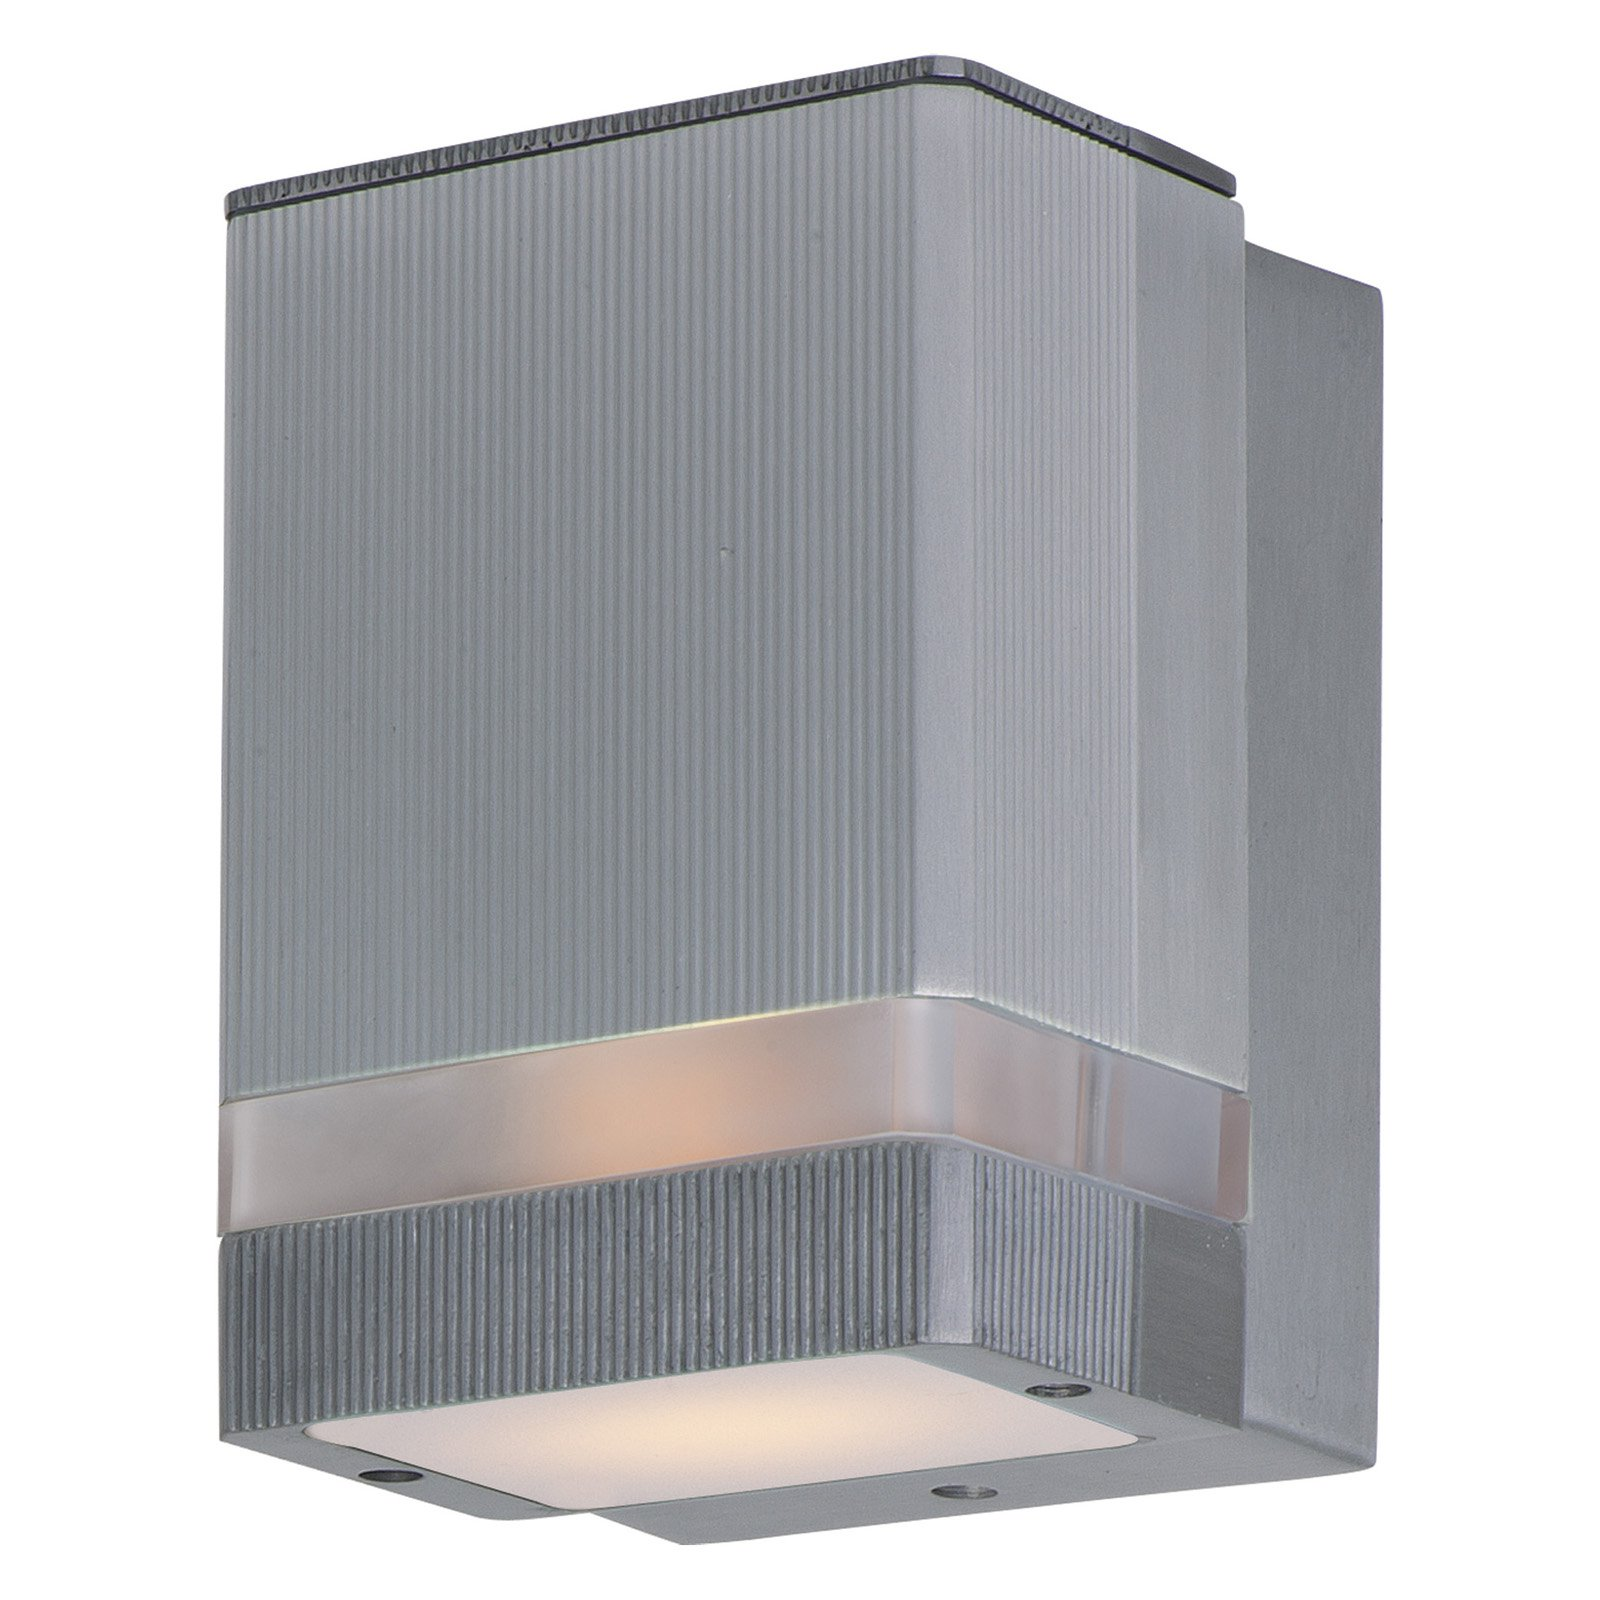 Maxim Lightray LED 86128 Outdoor Wall Sconce